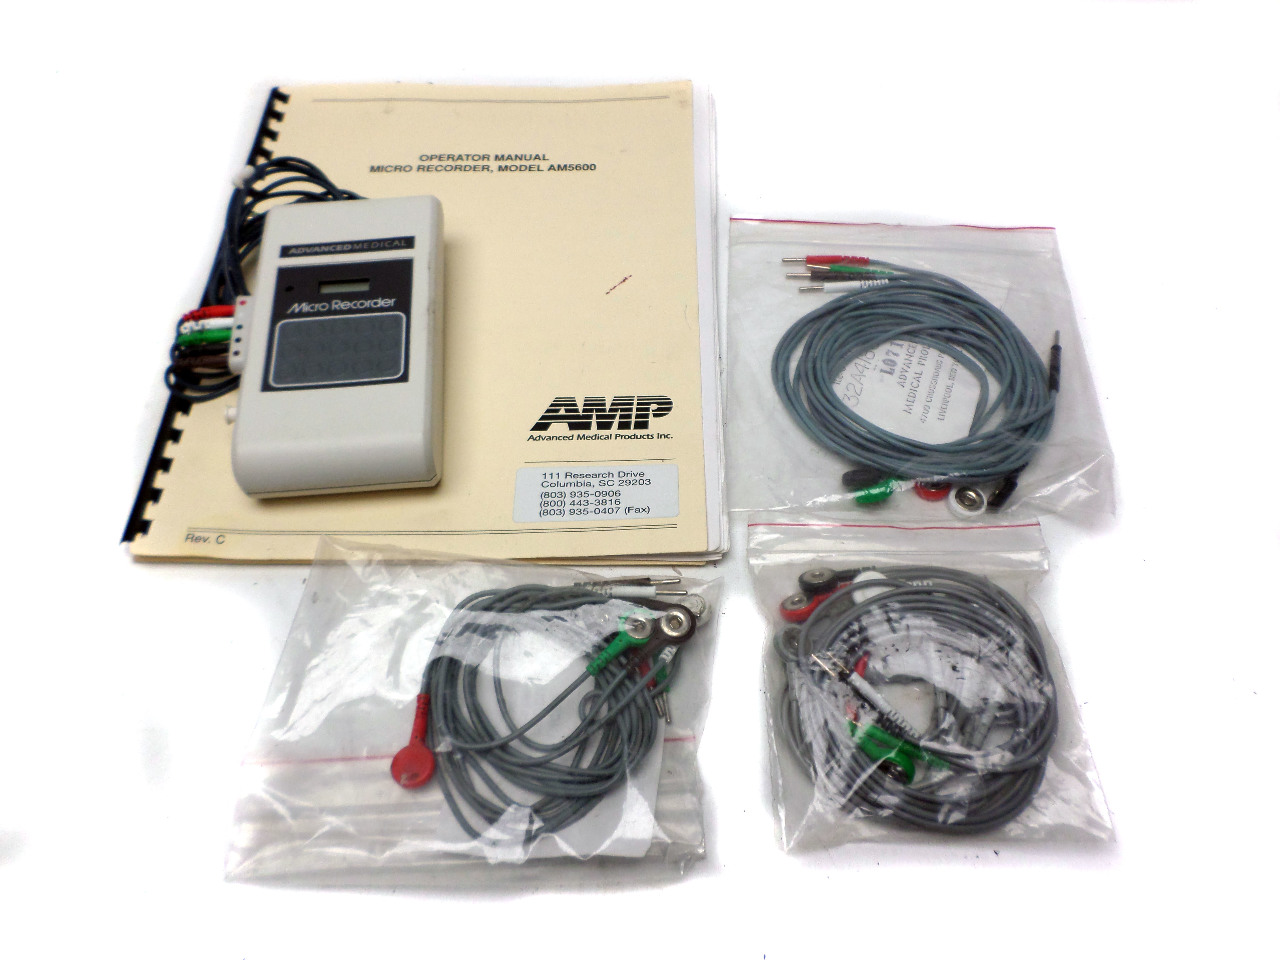 Advanced Medical Micro Recorder AM5600 Ambulatory ECG BP Monitoring With Leads